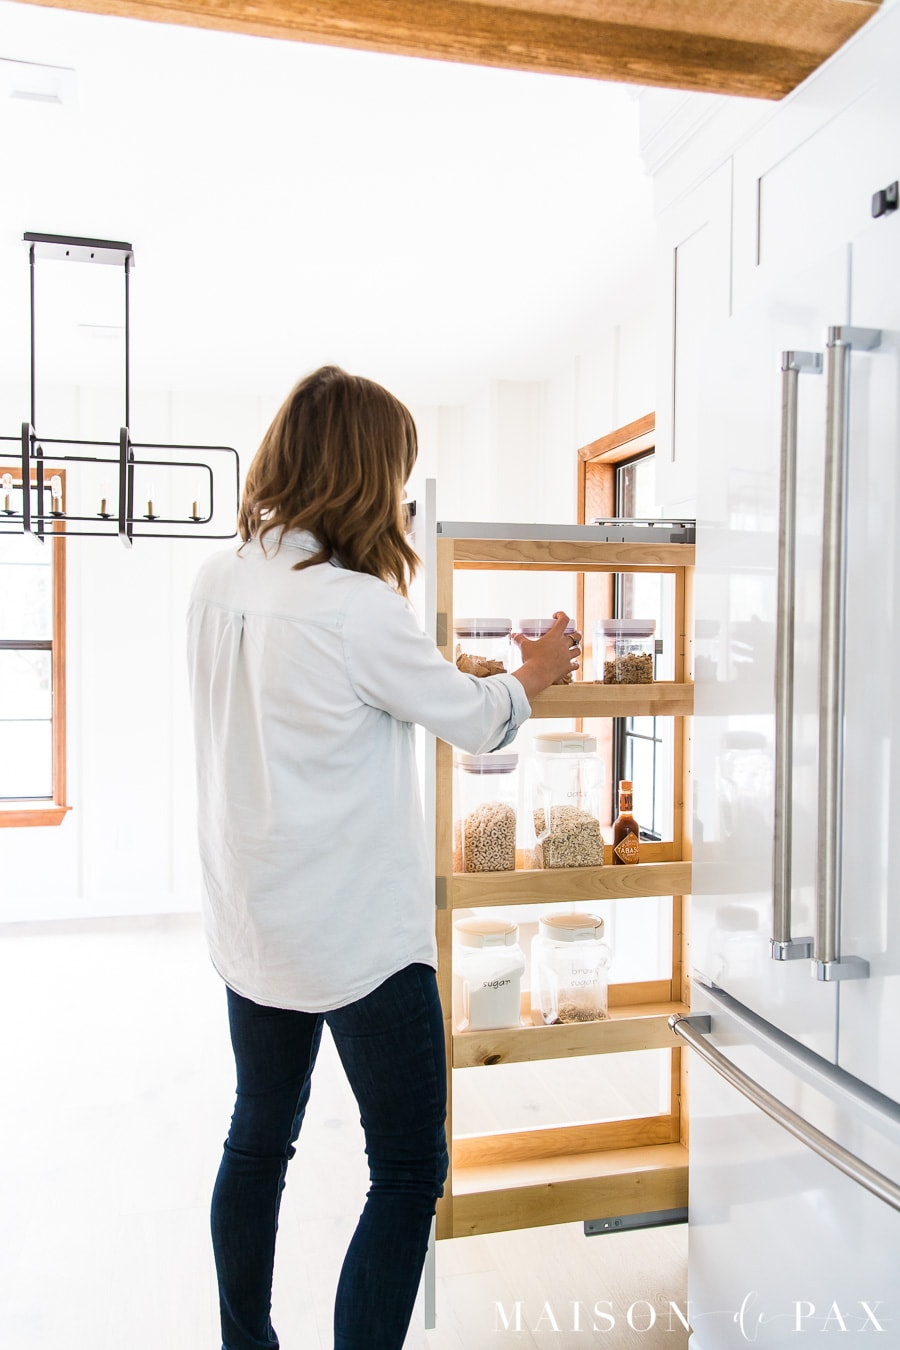 pantry pull out with organizing drawers | Maison de Pax